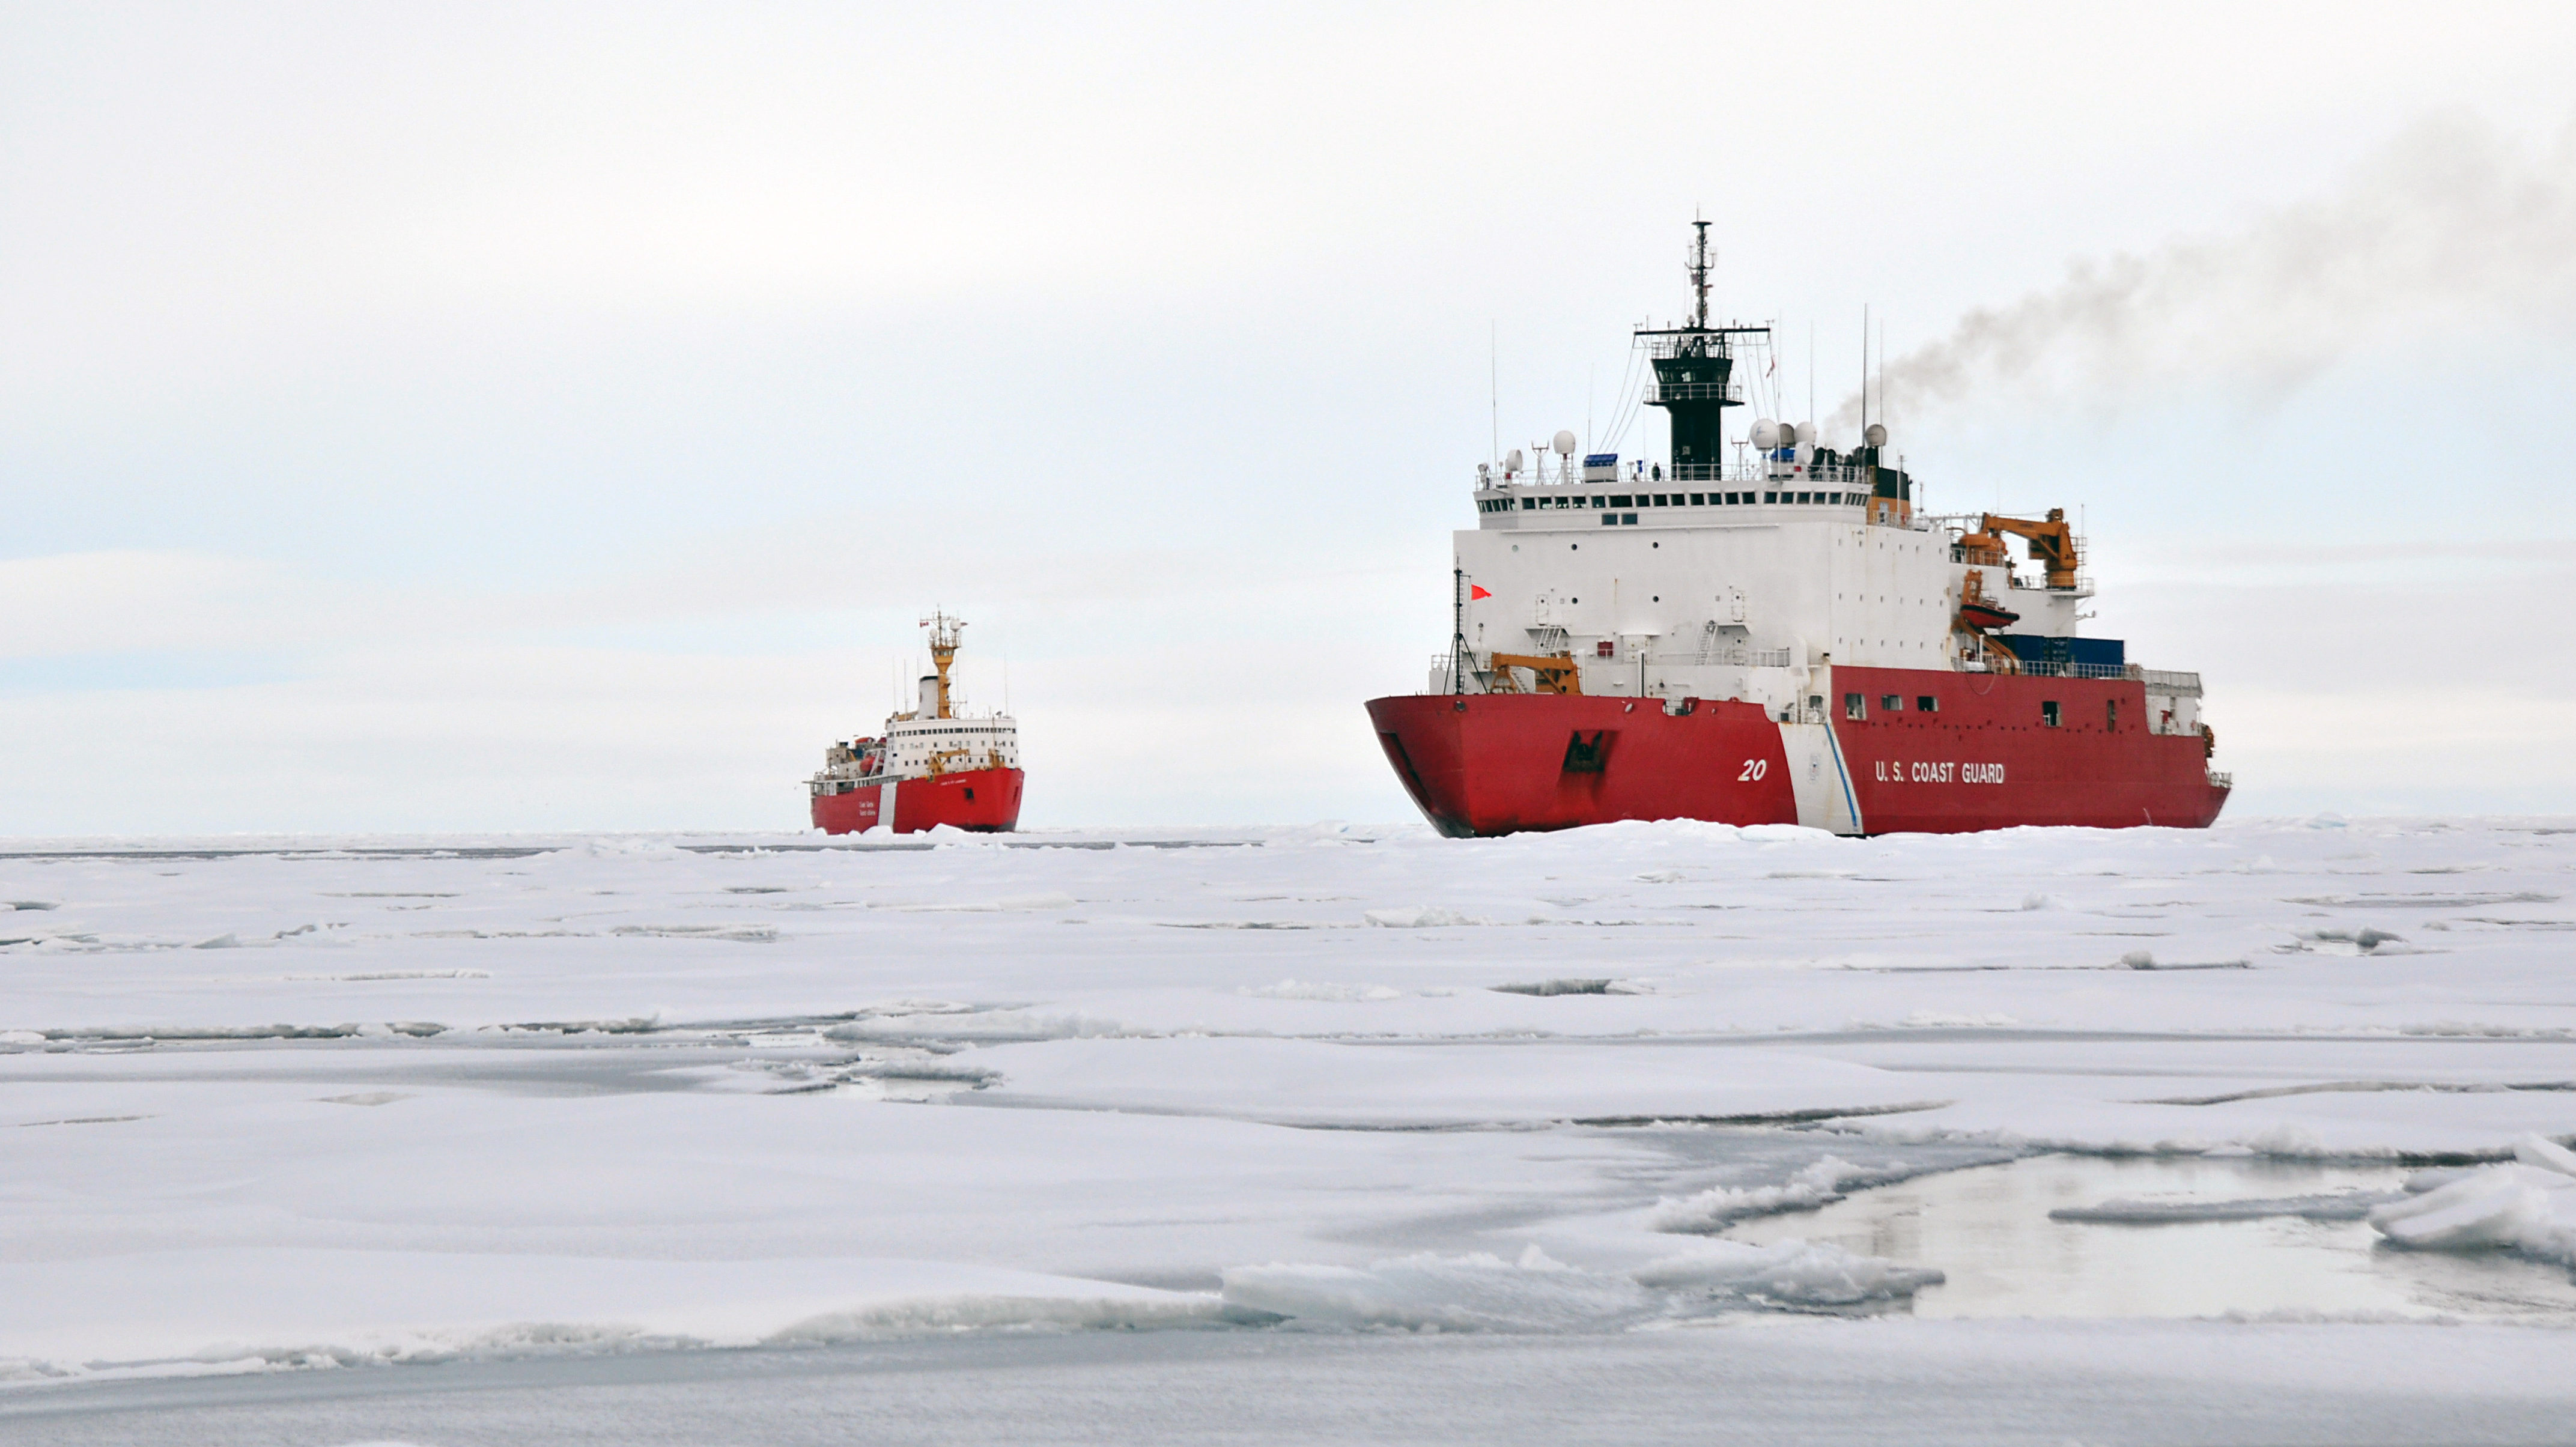 the U.S. Coast Guard Cutter Healy and the Canadian Coast Guard Cutter Louis S Saint Laurent operating in Arctic sea ice, as seen from the ice level